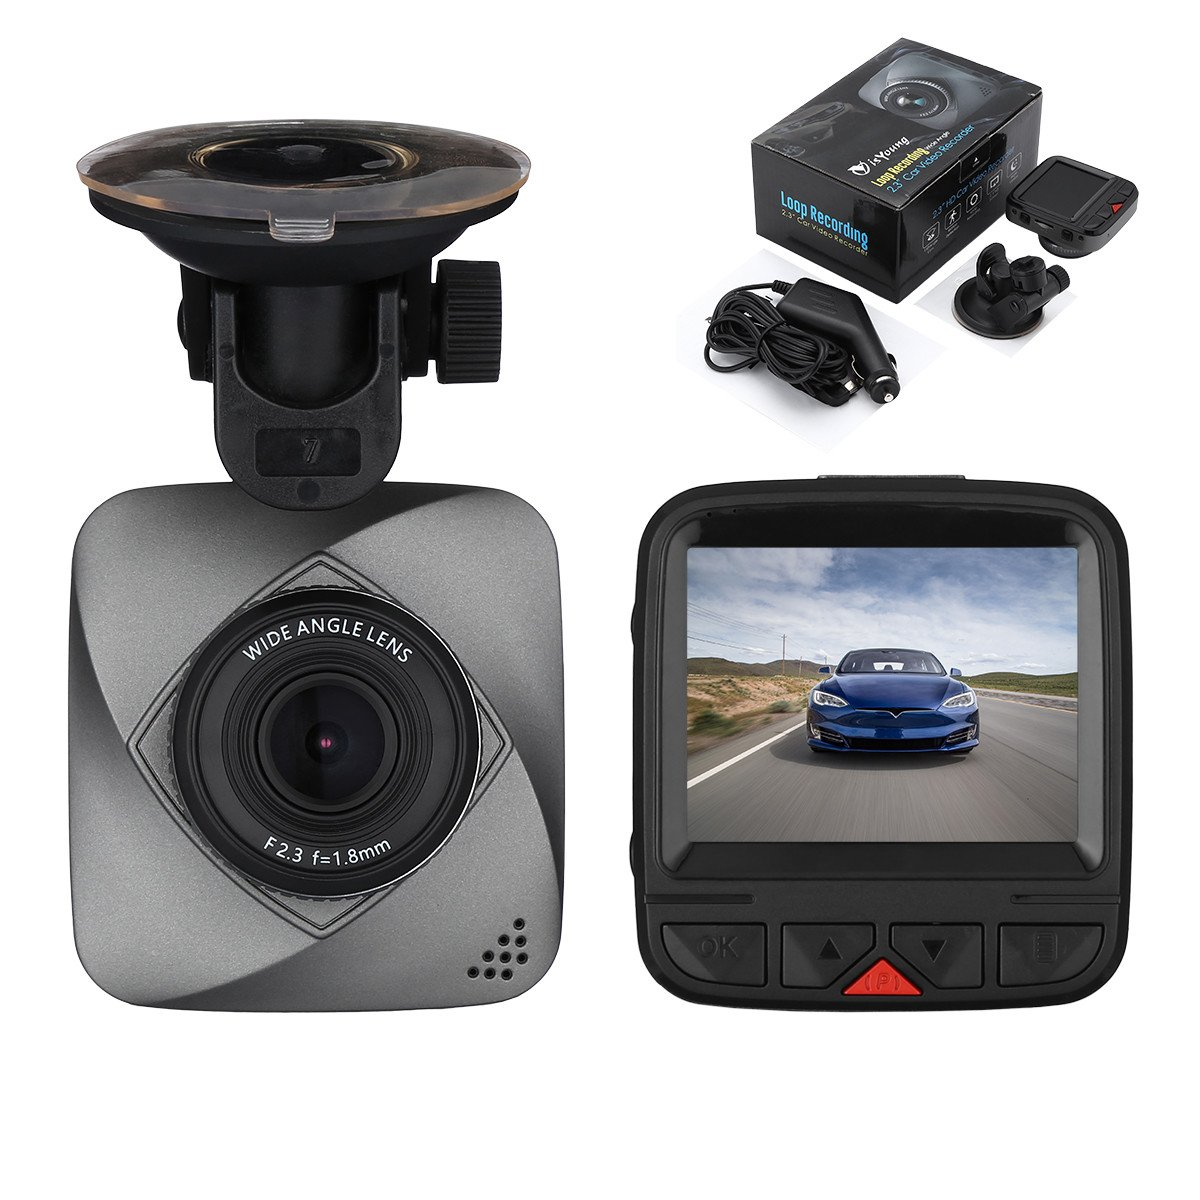 This Dash Cam was easy to set up